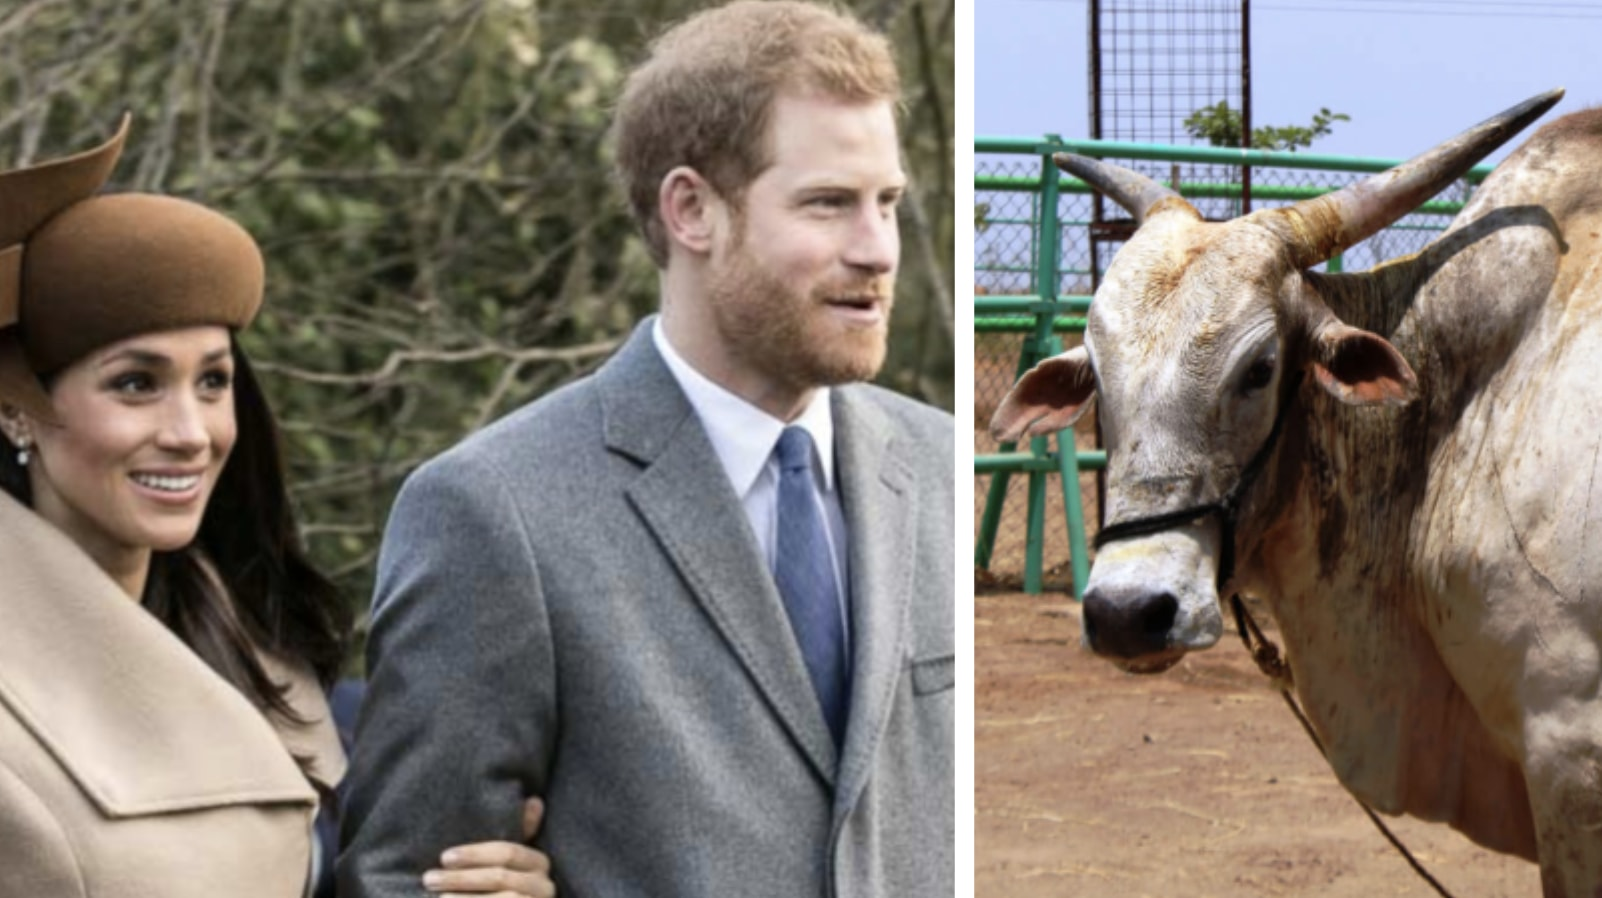 Vegan Charity Gives Prince Harry And Meghan Markle A Bull As A  Wedding Gift